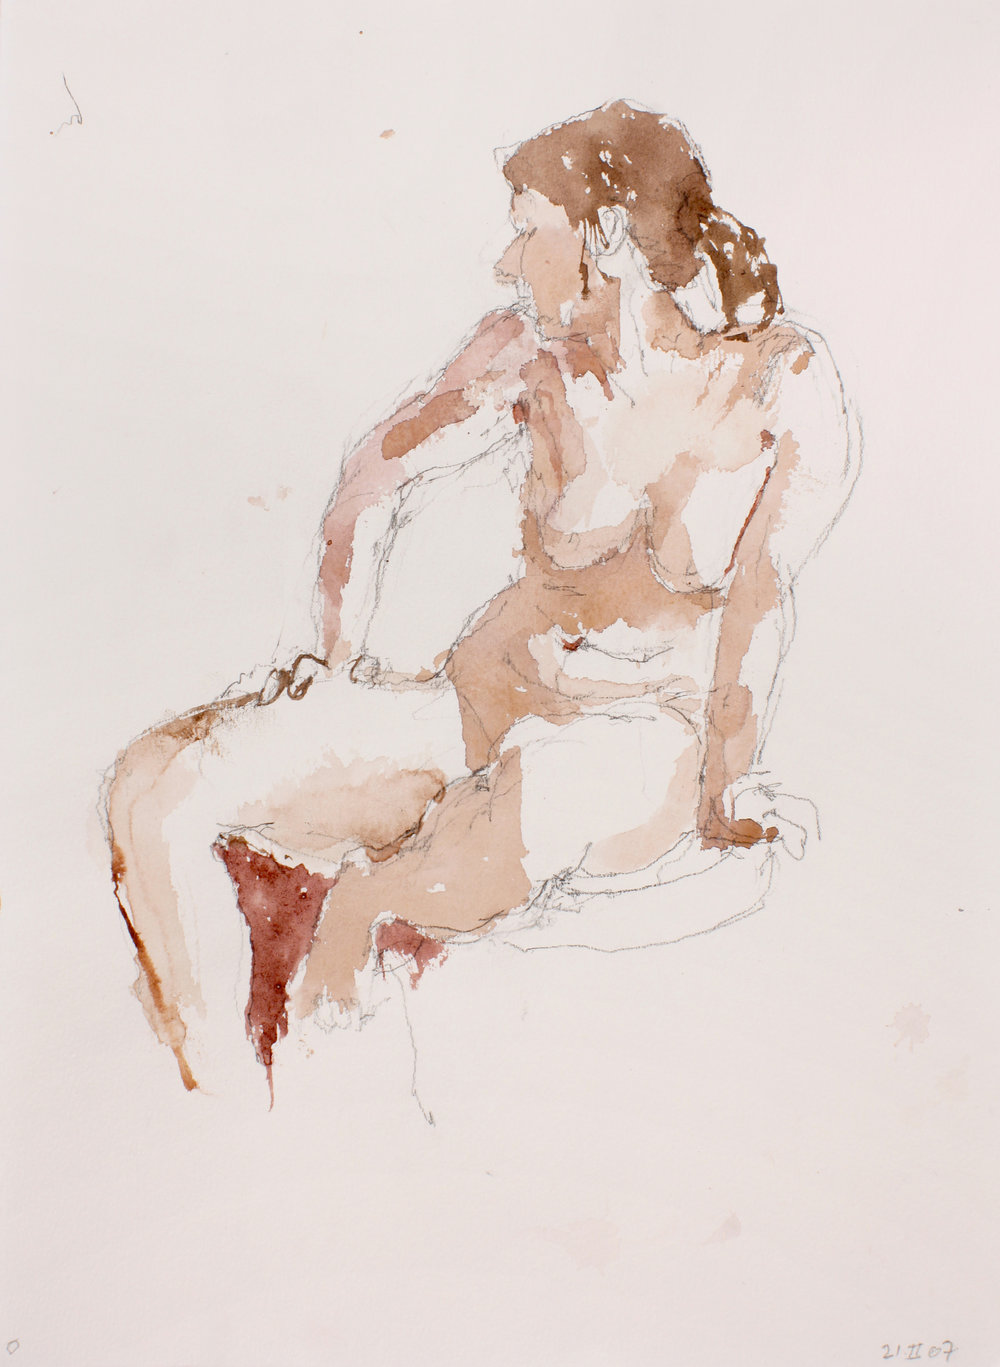 2007_Seated_Nude_with_Bent_Arm_on_Thigh_watercolour_and_pencil_on_paper_15x11in_WPF239.jpg